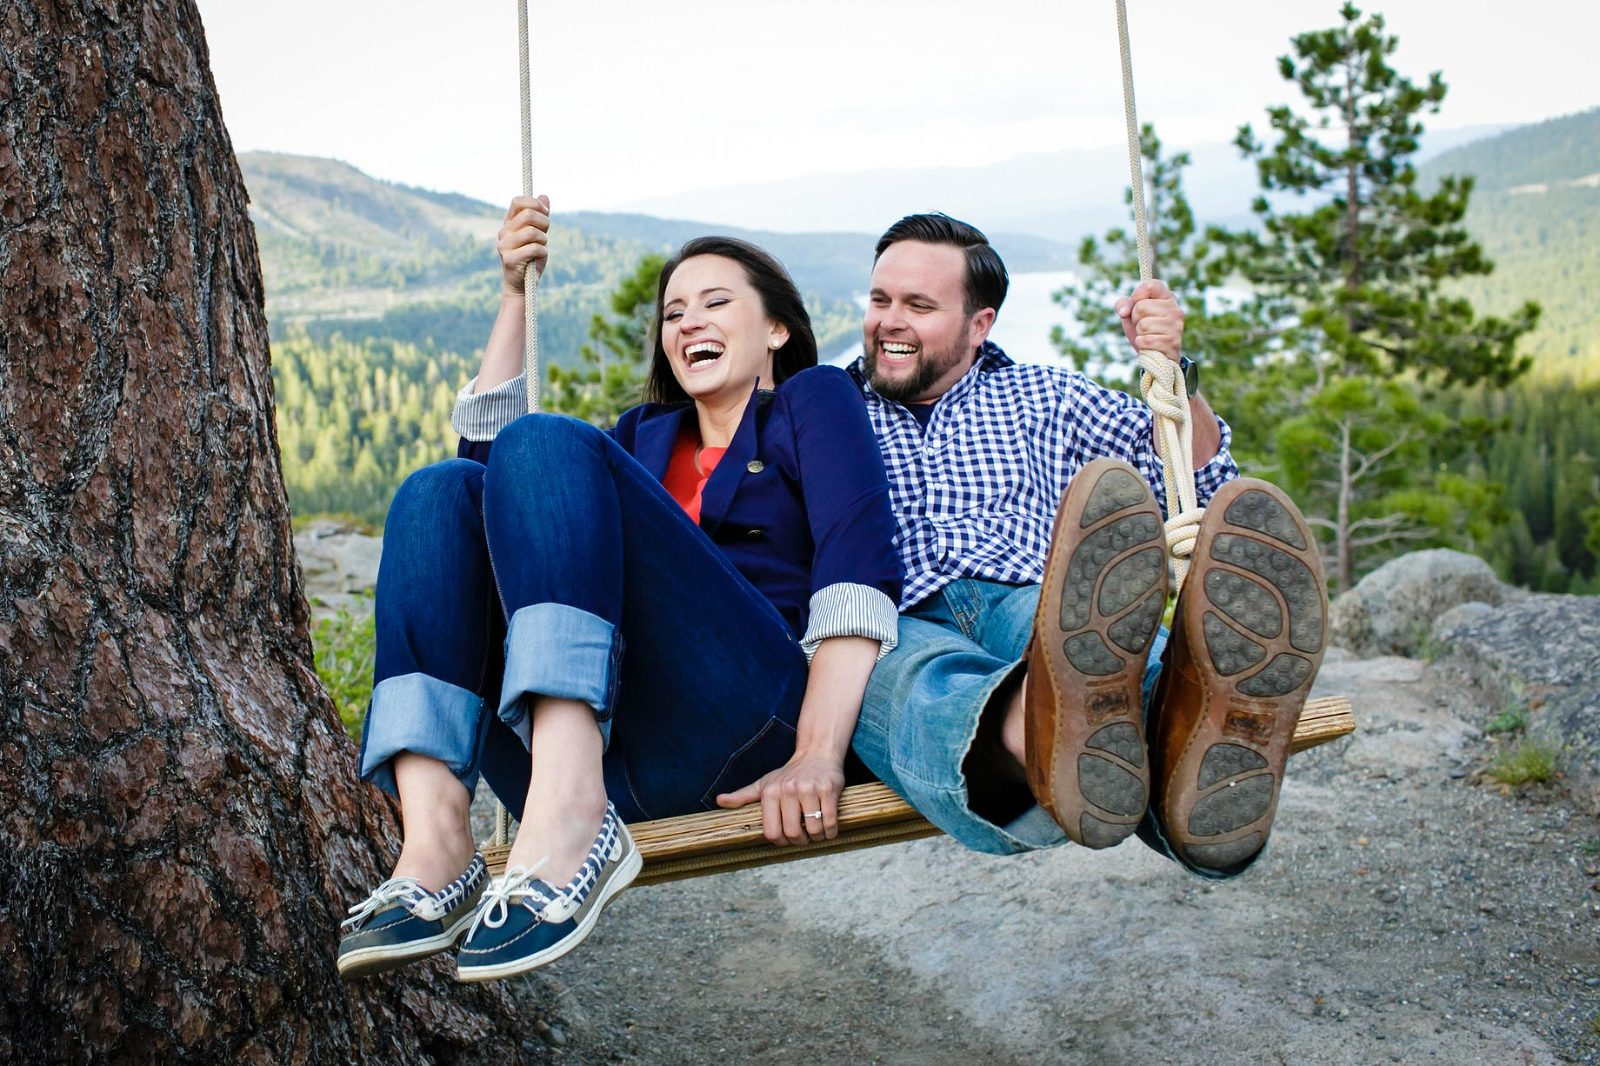 A swing hanging from the branch of a pine tree is a fun place to stop for a few Lake Tahoe engagement photos.